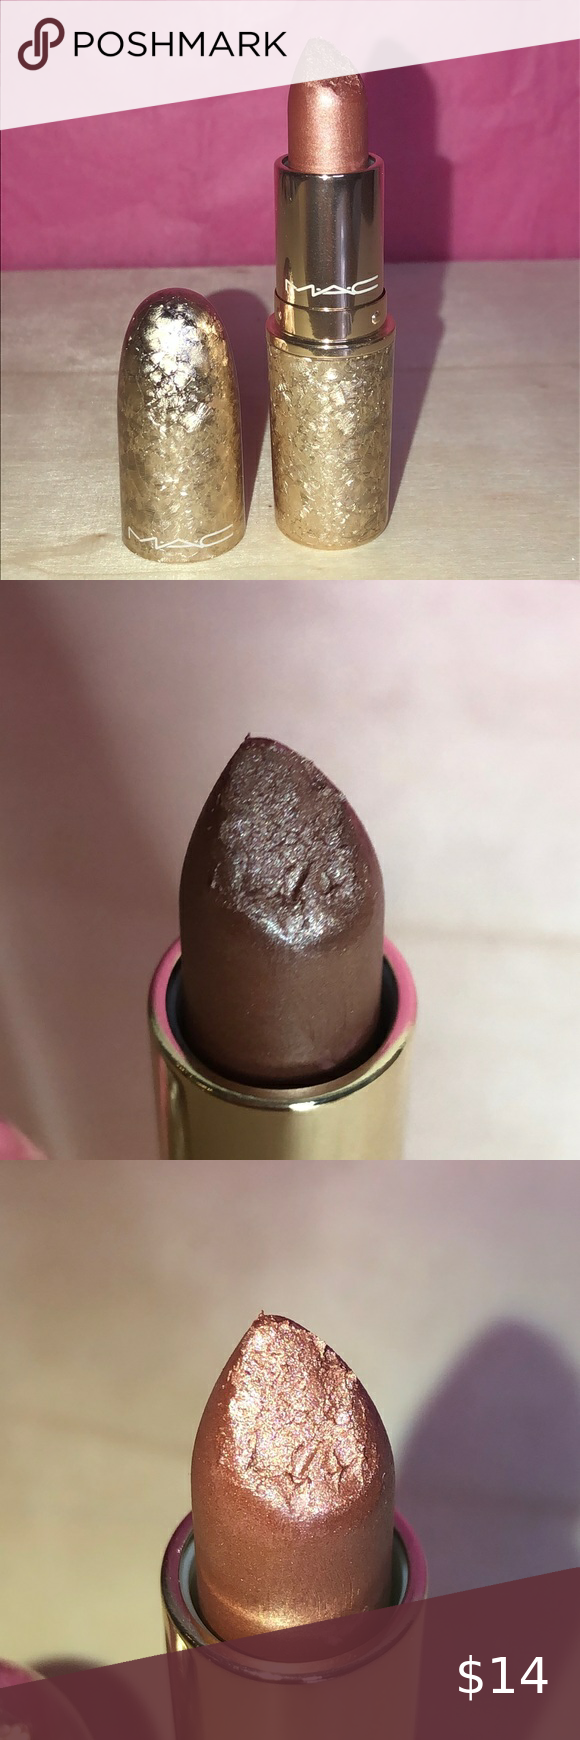 "MAC ""Holiday Crush"" Frost Lipstick in 2020 Frosted"